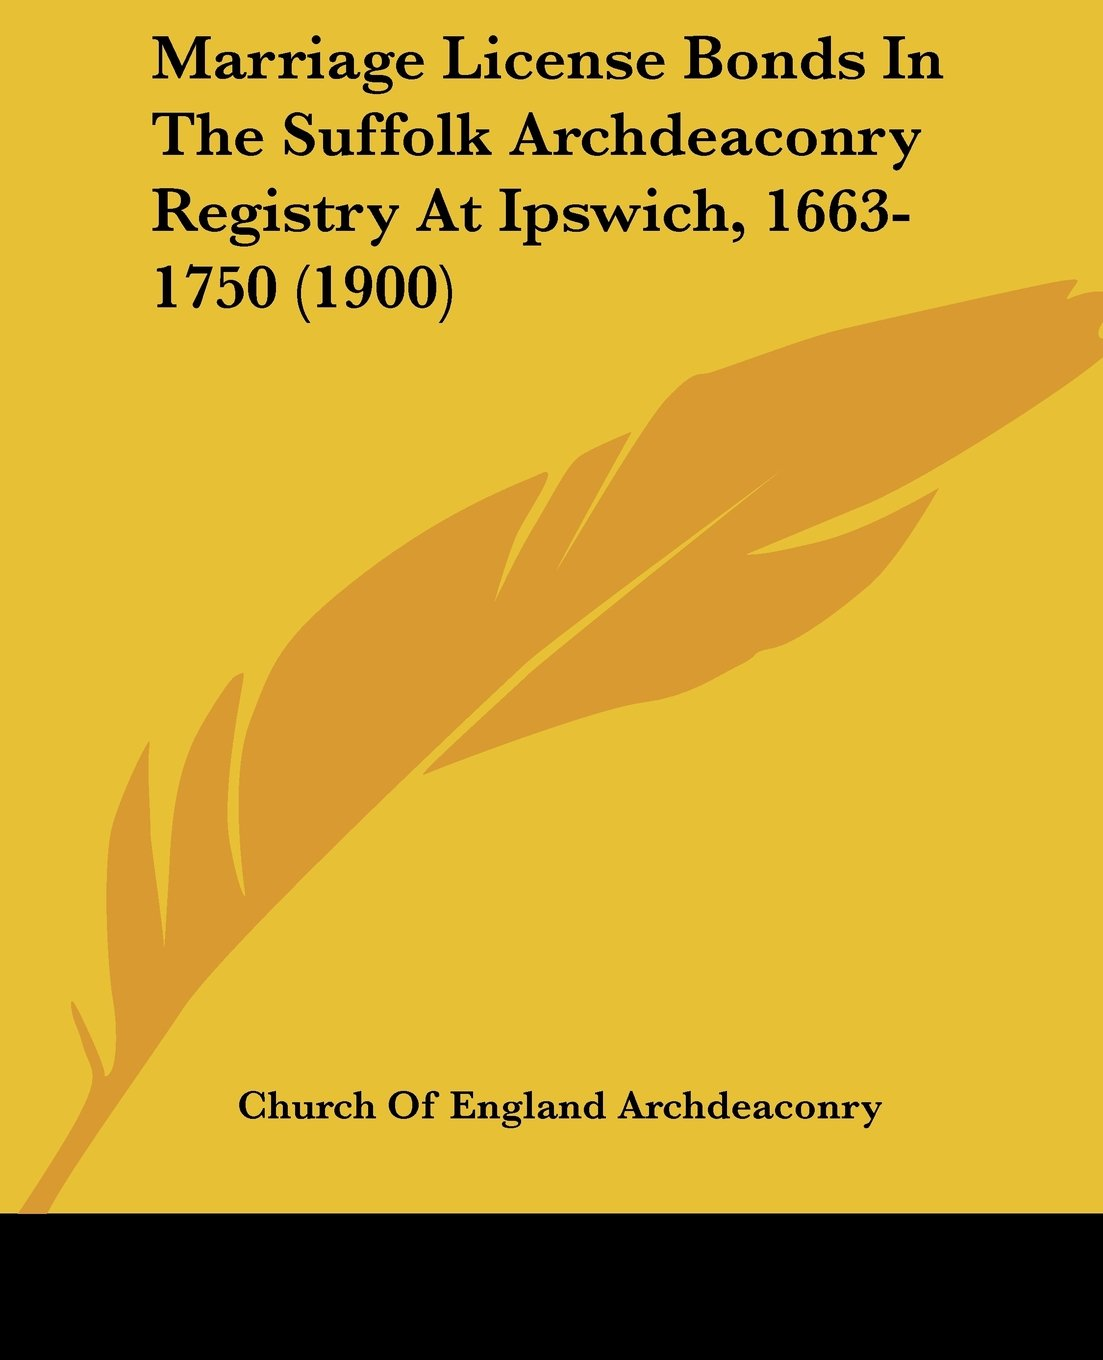 Marriage License Bonds In The Suffolk Archdeaconry Registry At Ipswich, 1663-1750 (1900) ebook